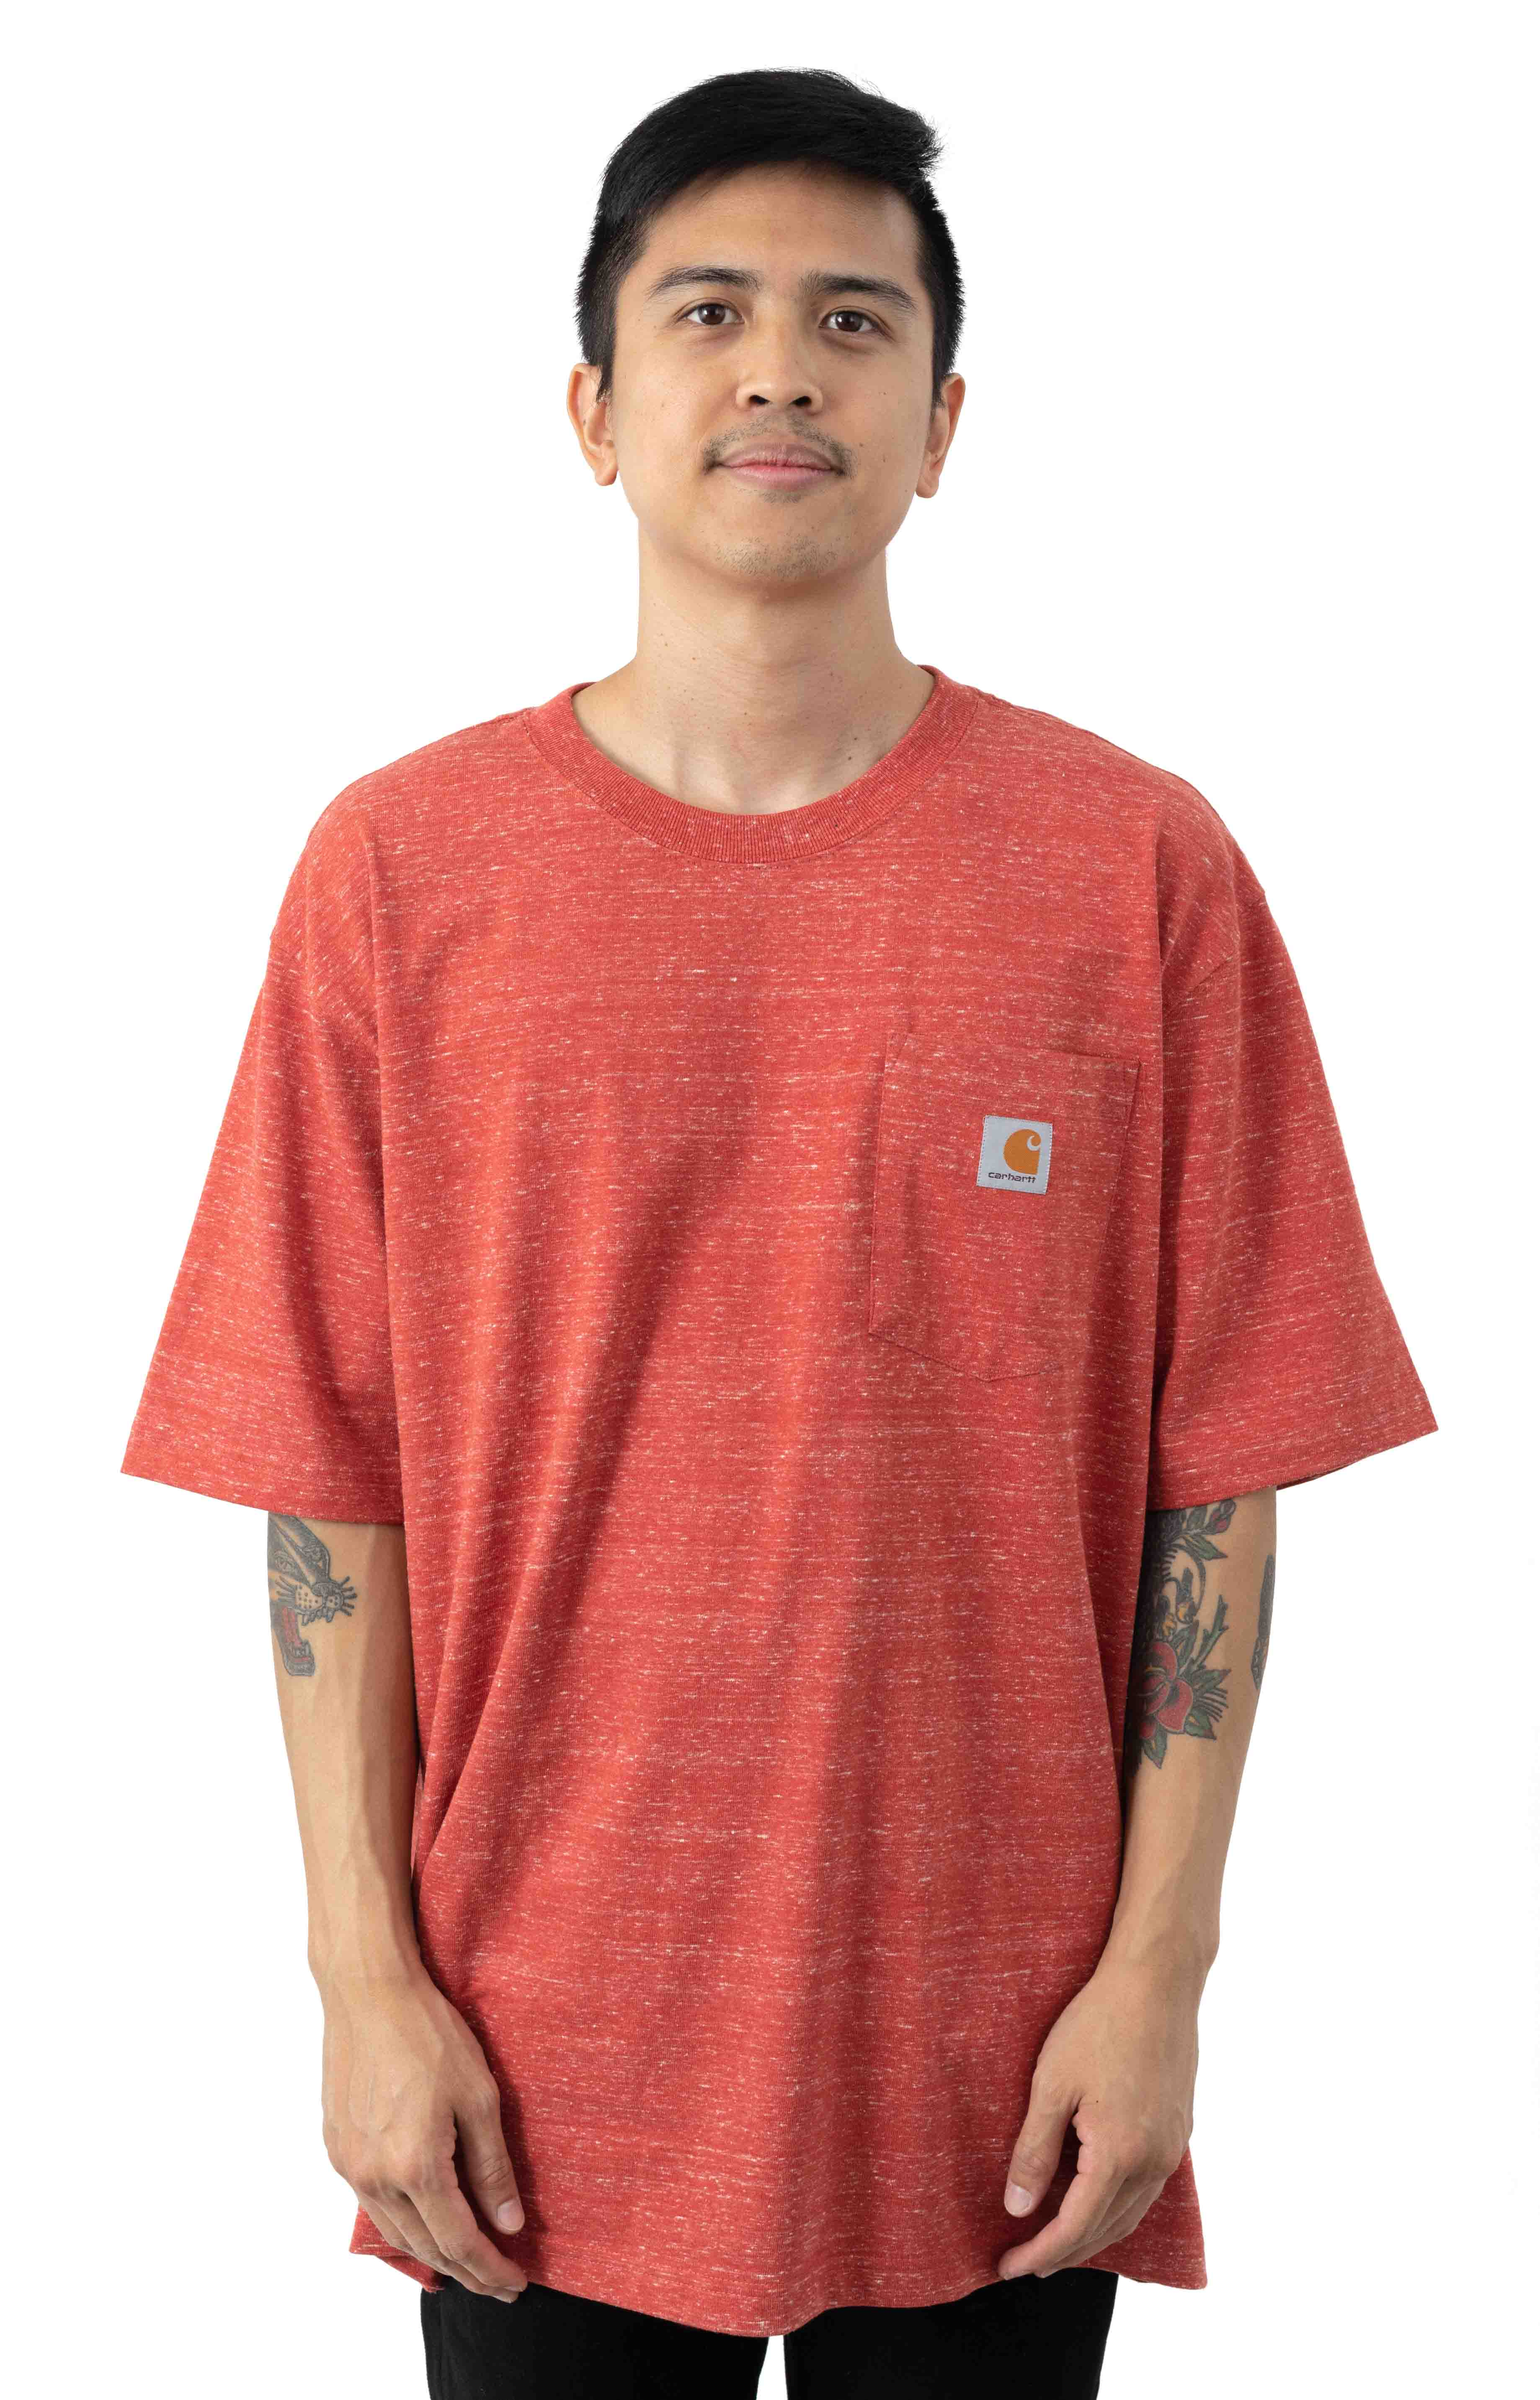 (K87) Workwear Pocket T-Shirt - Cayenne Snow Heather